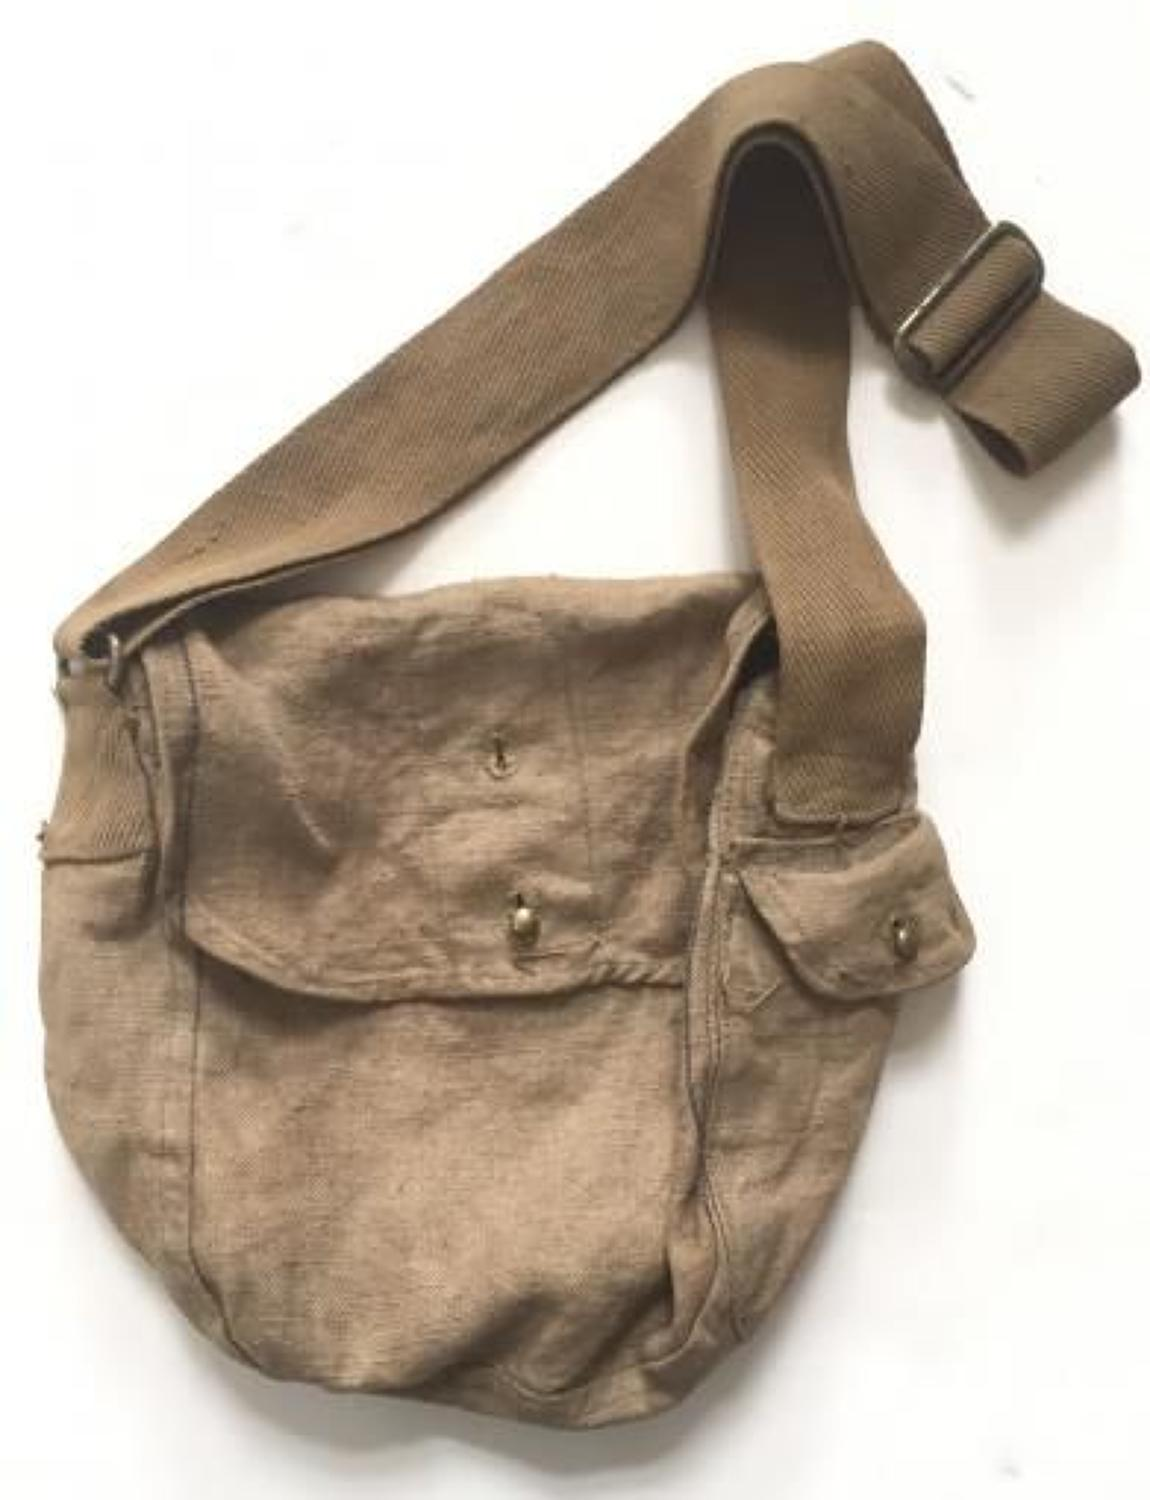 WW1 1903 Cavalry Equipment Side Bag.